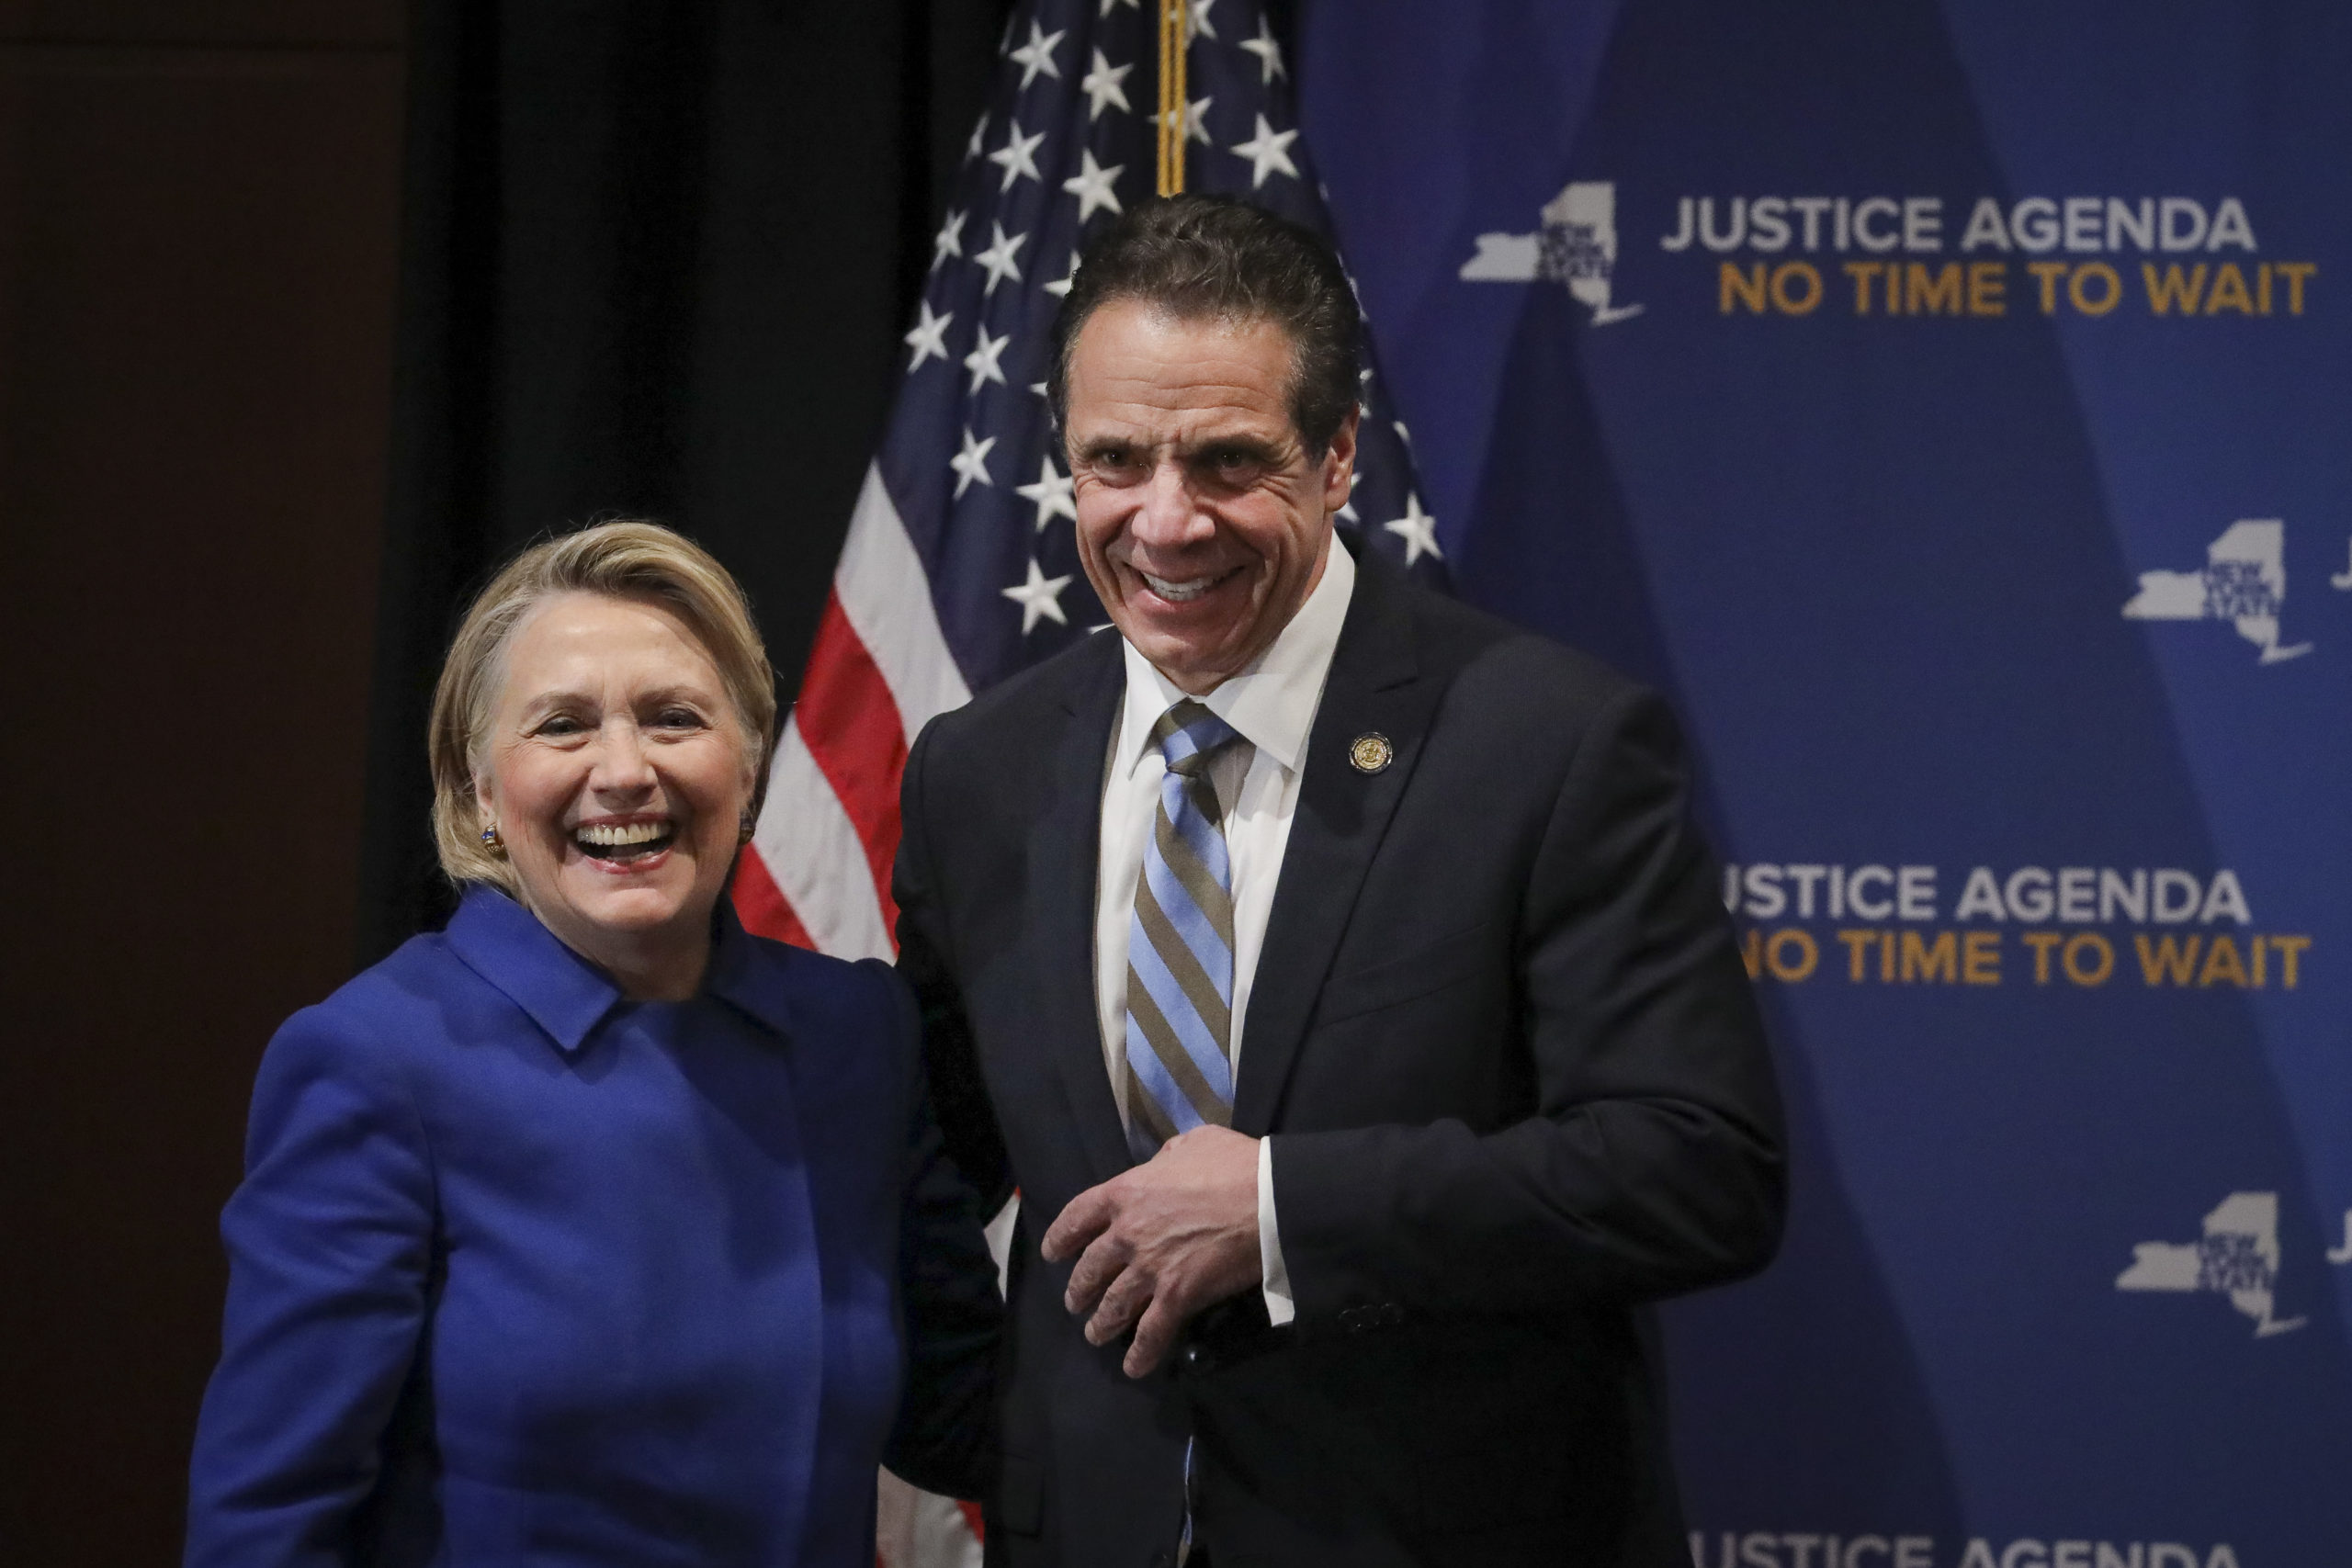 Former Secretary of State Hillary Clinton and New York Governor Andrew Cuomo share the stage to promote the Reproductive Health Act in New York, which Cuomo wants the State Legislature to pass in their first 30 days. Under New York's current law, abortions after 24 weeks are illegal unless its necessary to save the woman's life. (Drew Angerer/Getty Images)